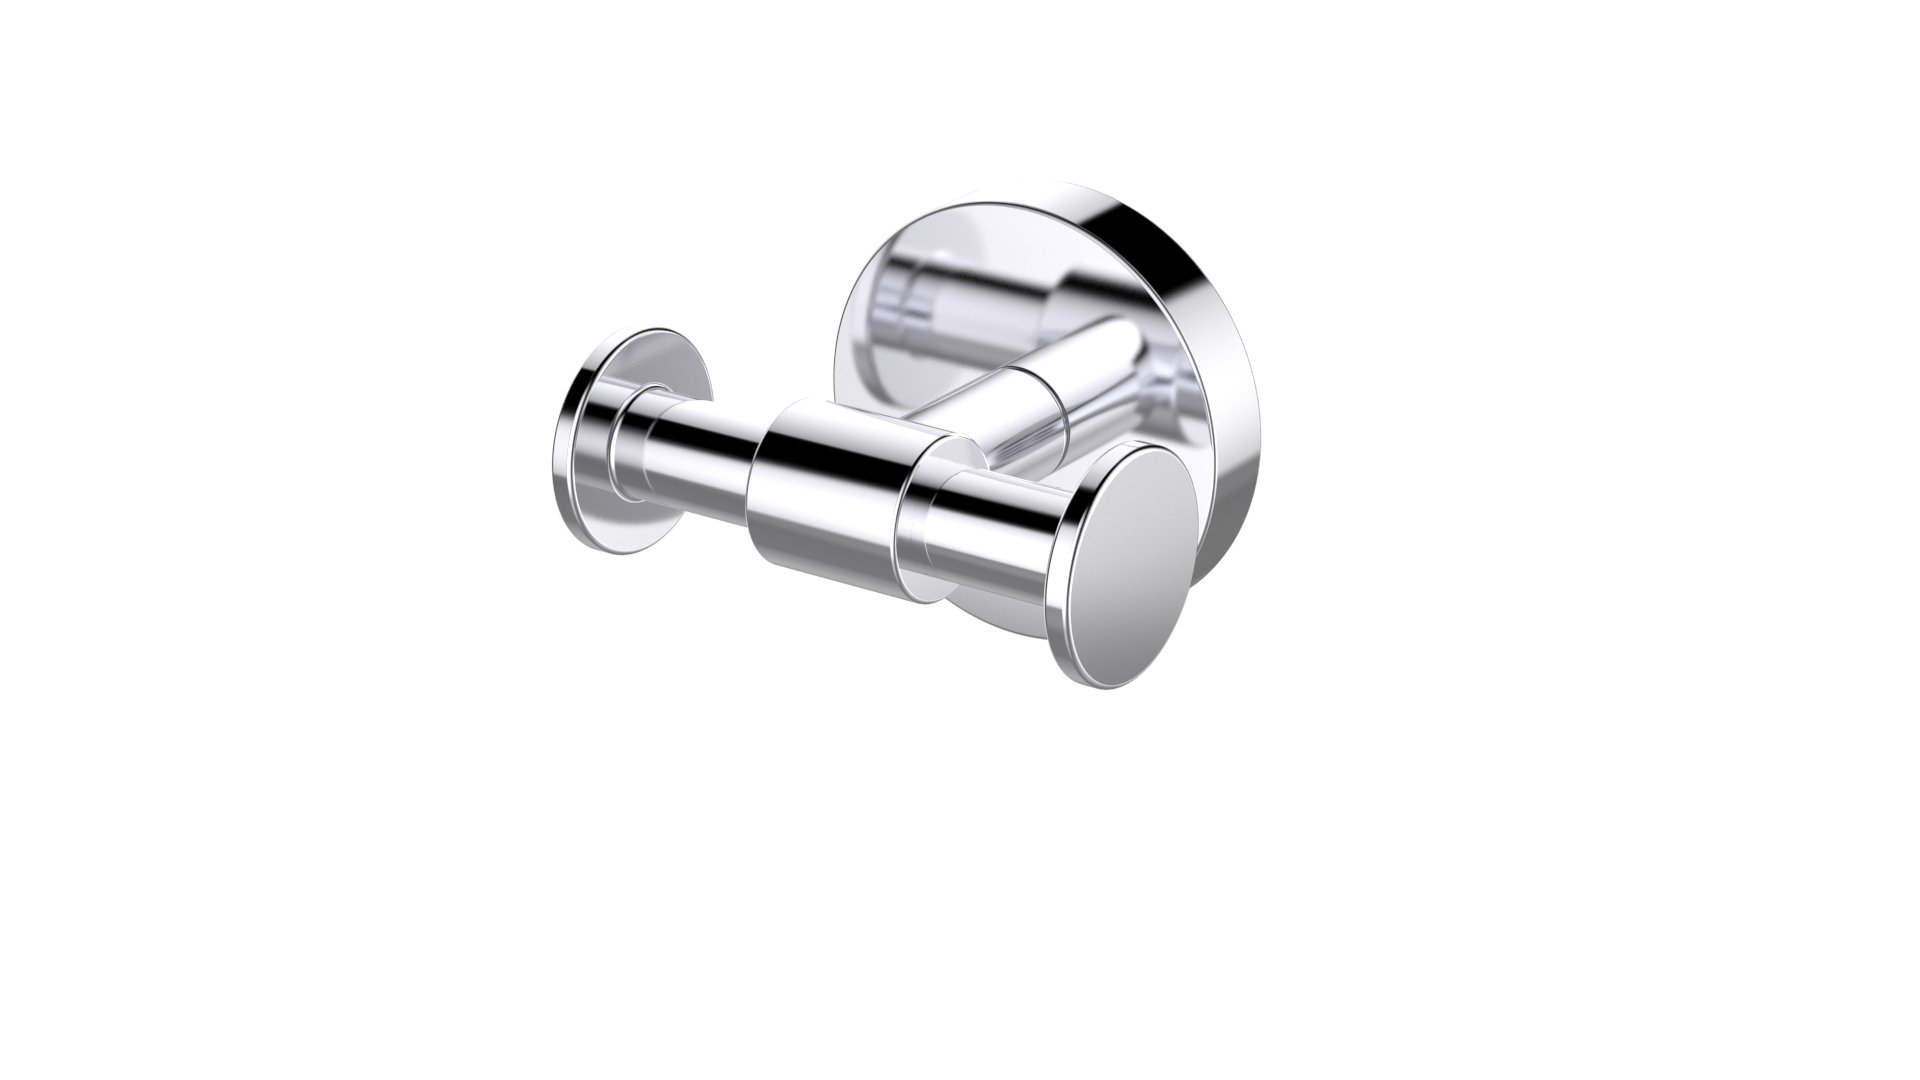 Eviva EVAC32CH Twin Bullet Towel or Robe Hook ROUND Design (Chrome) Bathroom Accessories Combination